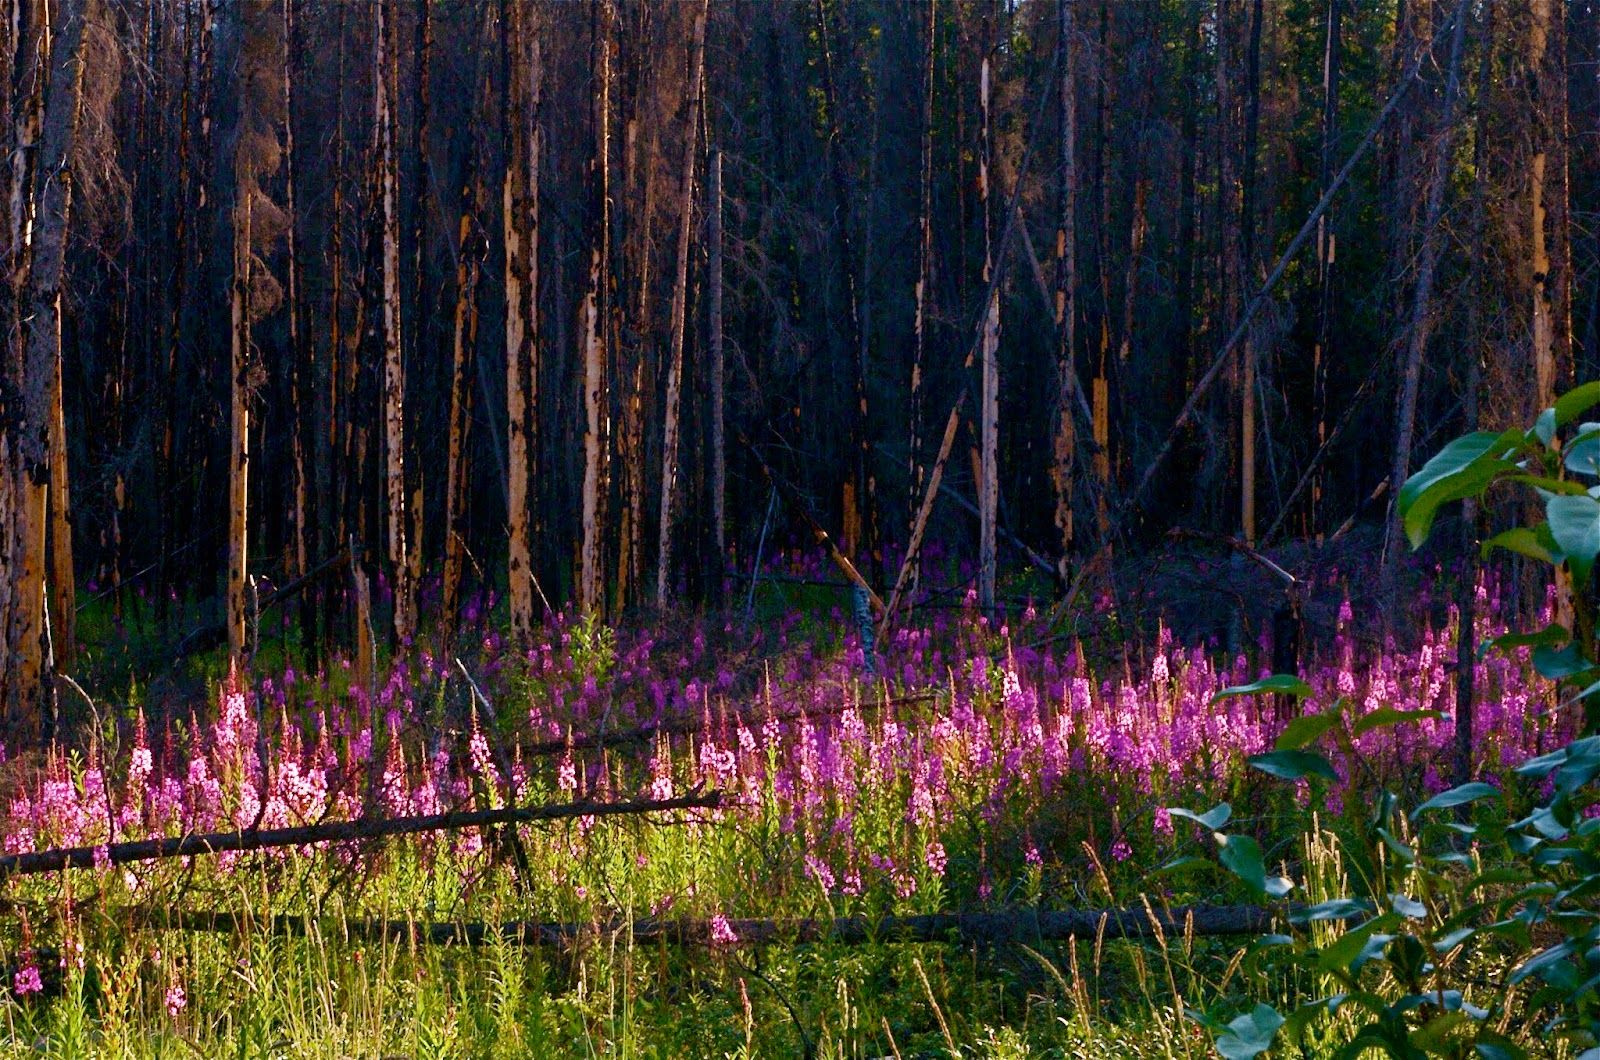 Forest and flowers